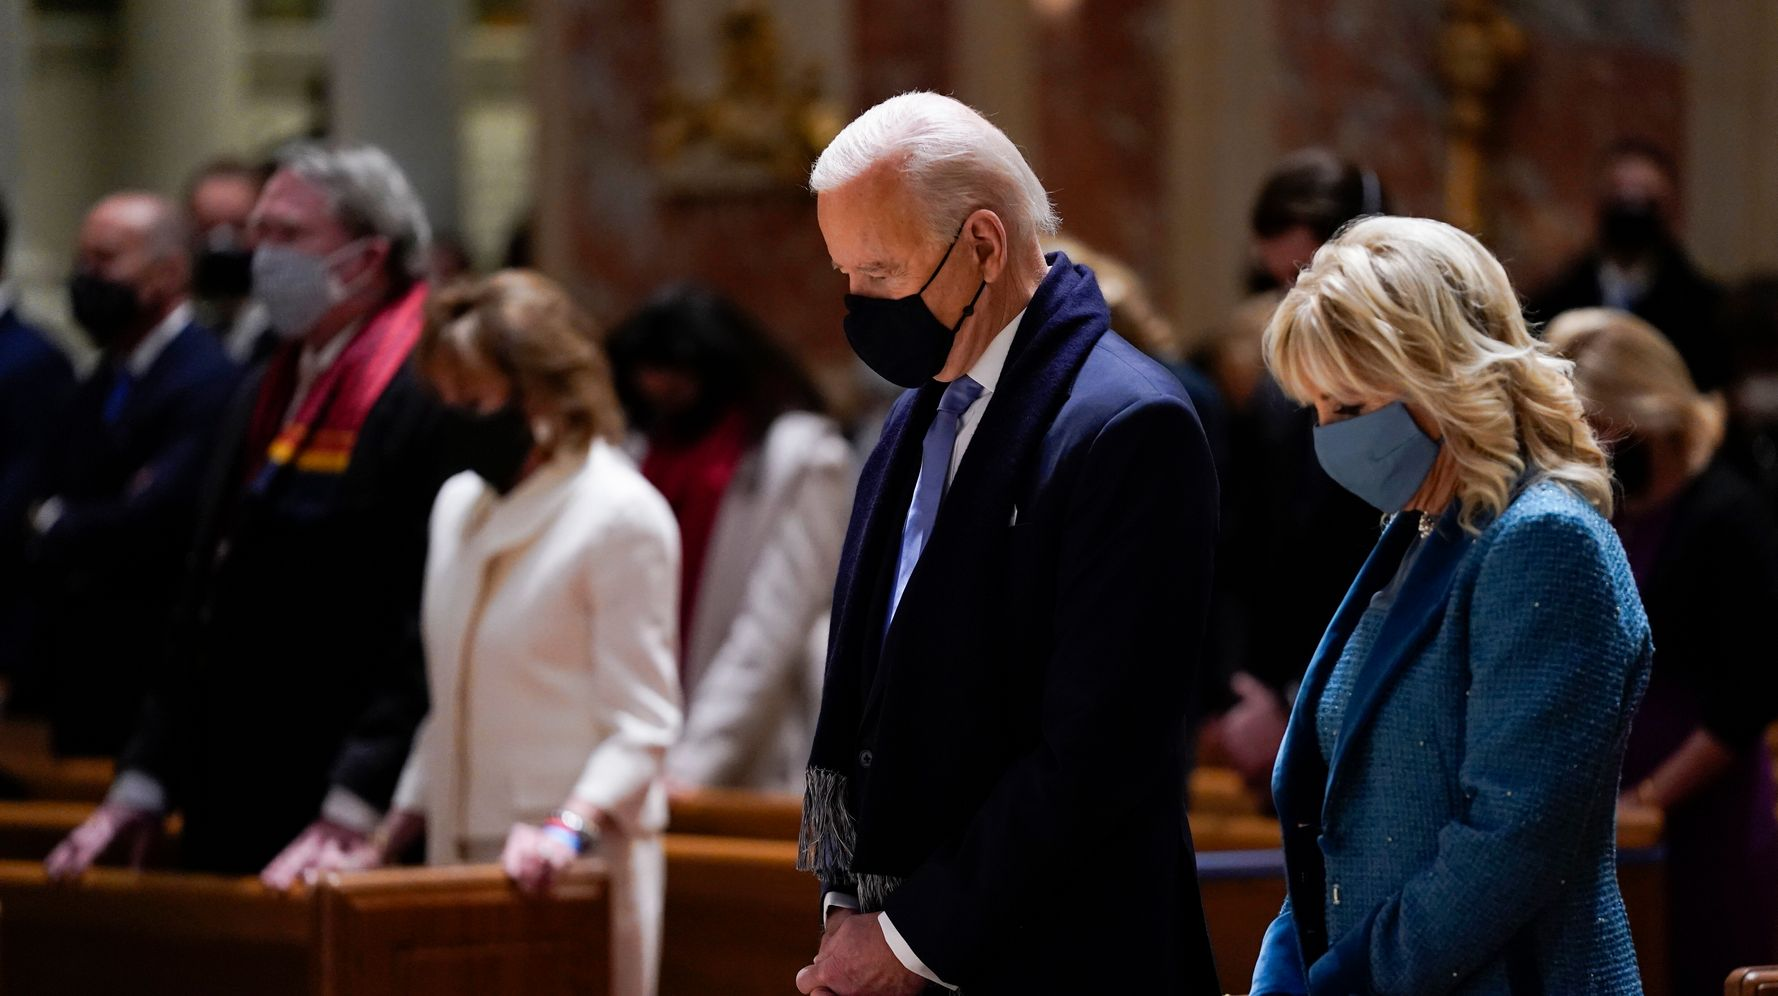 Catholic Bishops Are Already Divided On How To Deal With Biden's Progressive Faith